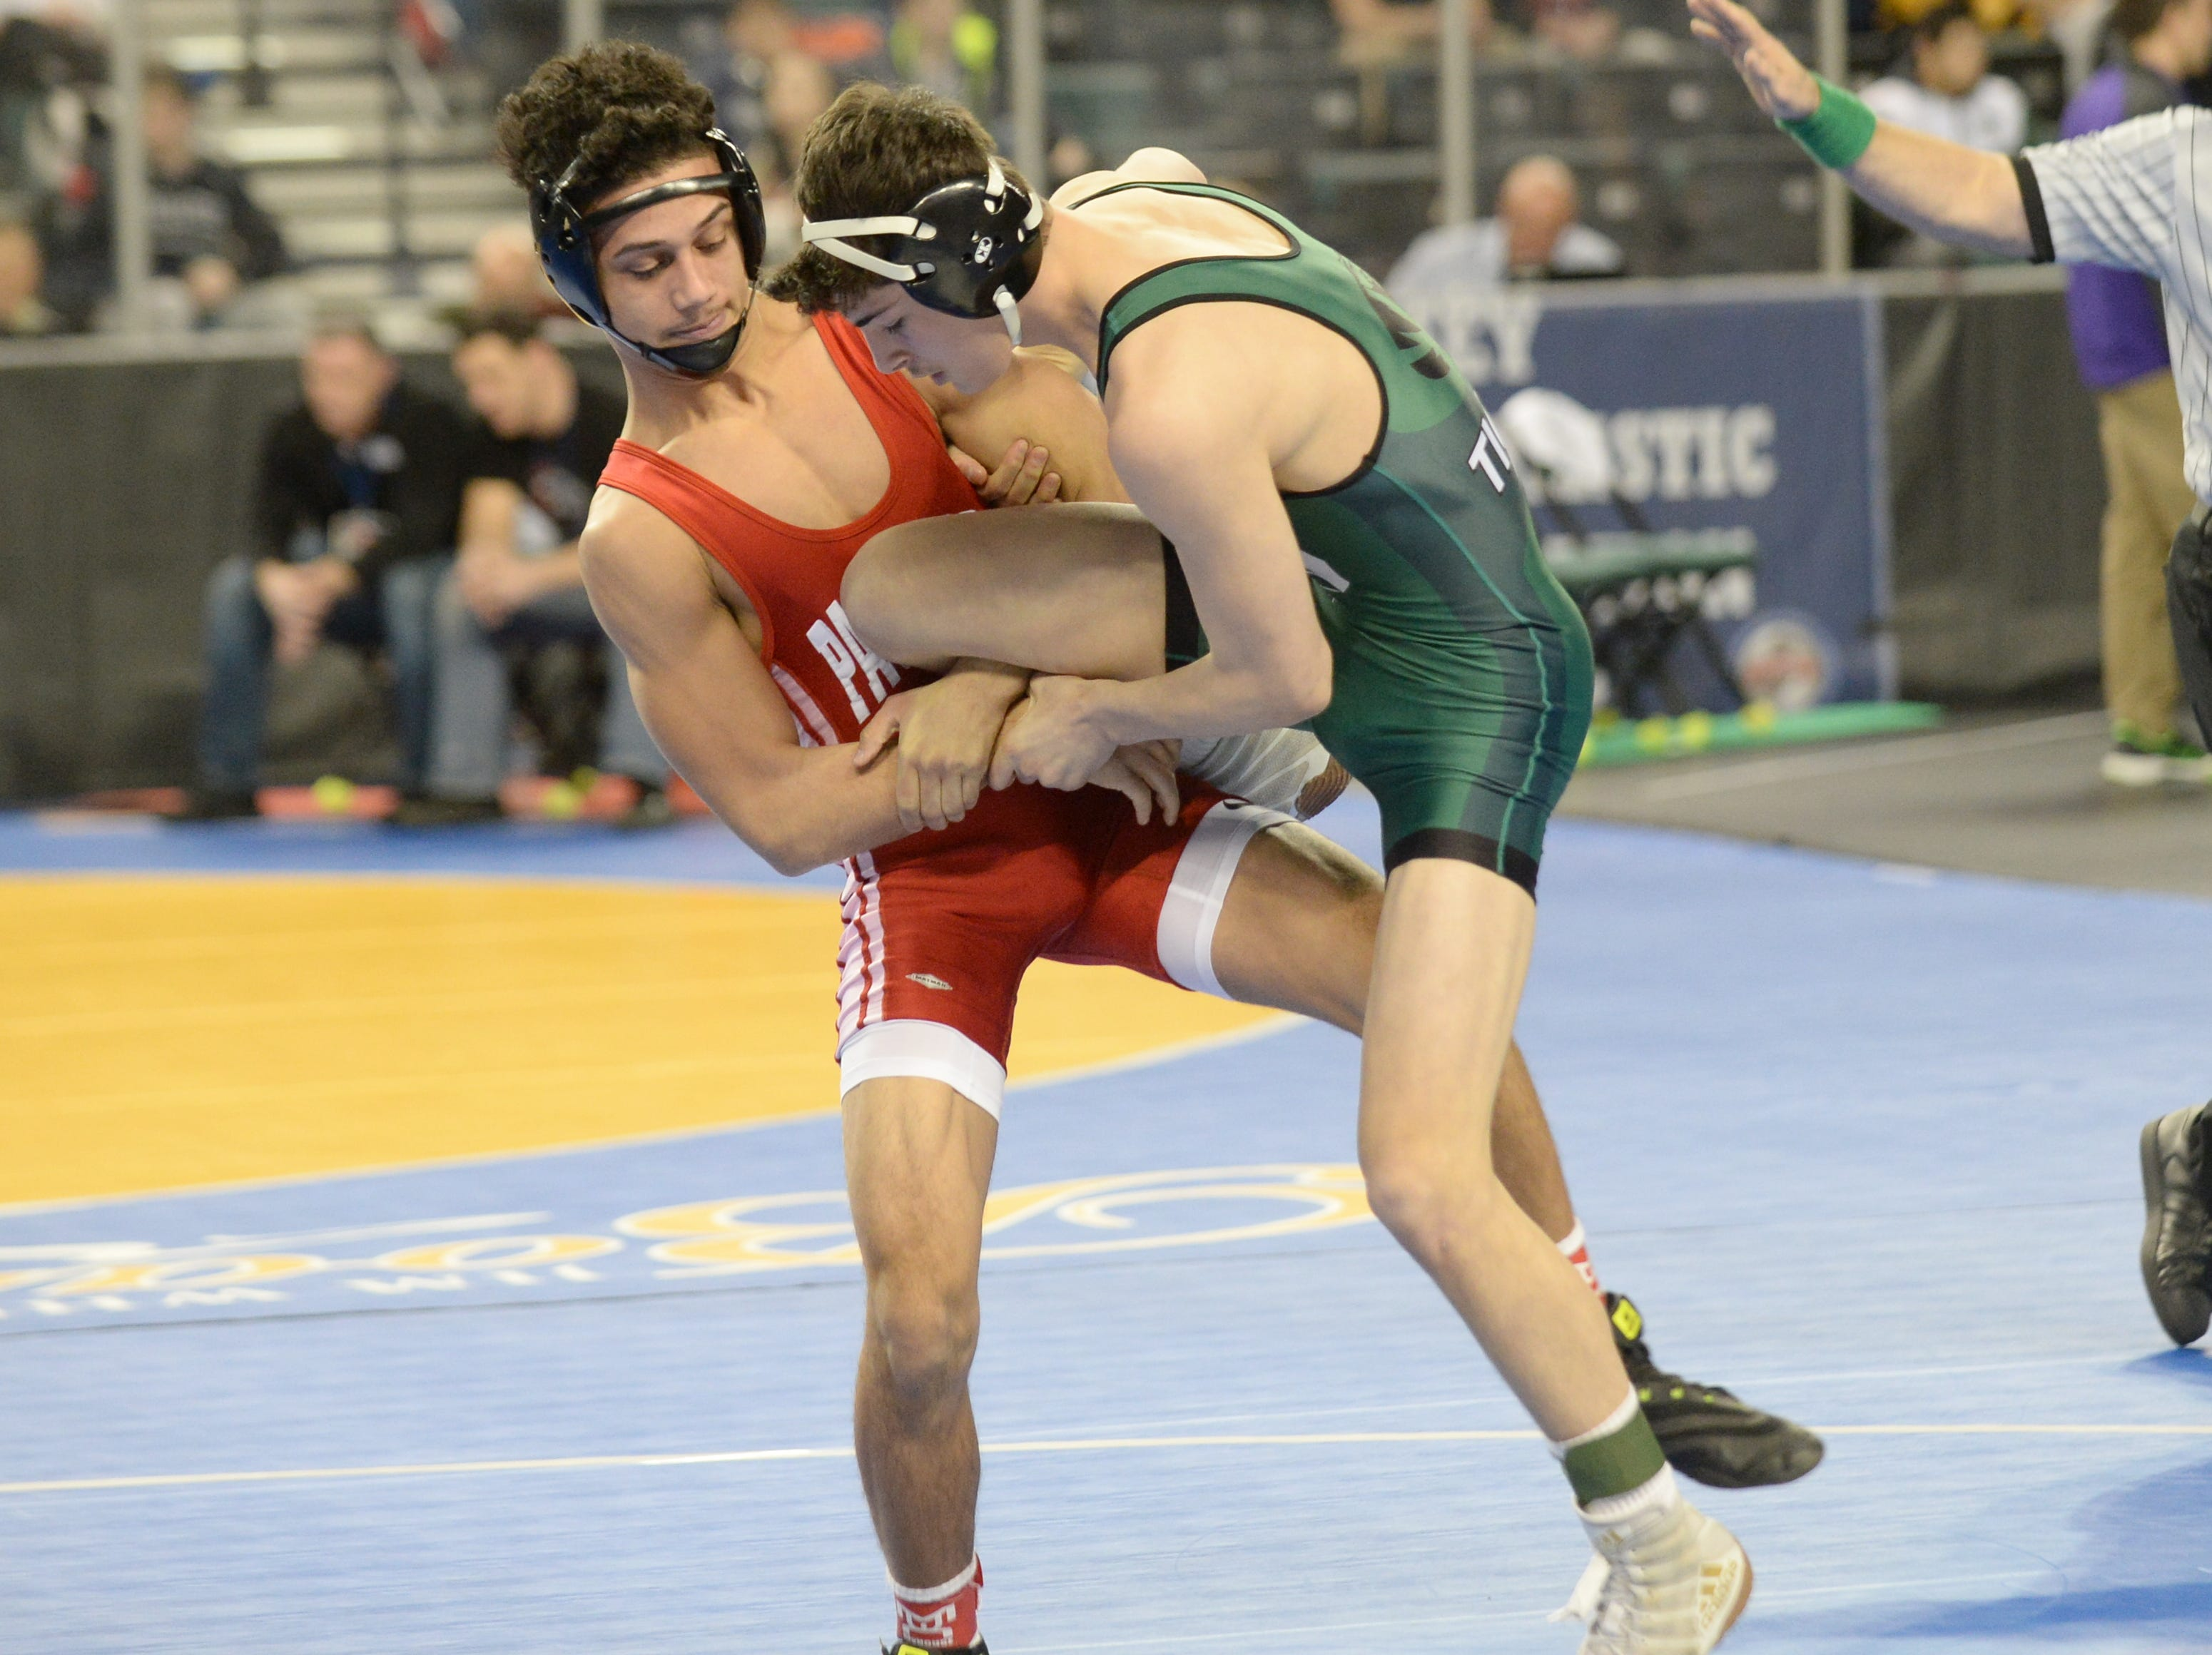 South Plainfield's Alex Amato wrestles Paulsboro's Jacob Perez-Eli in a 138-pound first round bout during the NJSIAA Individual Wrestling Championships at Boardwalk Hall in Atlantic City, Thursday, Feb. 28, 2019.